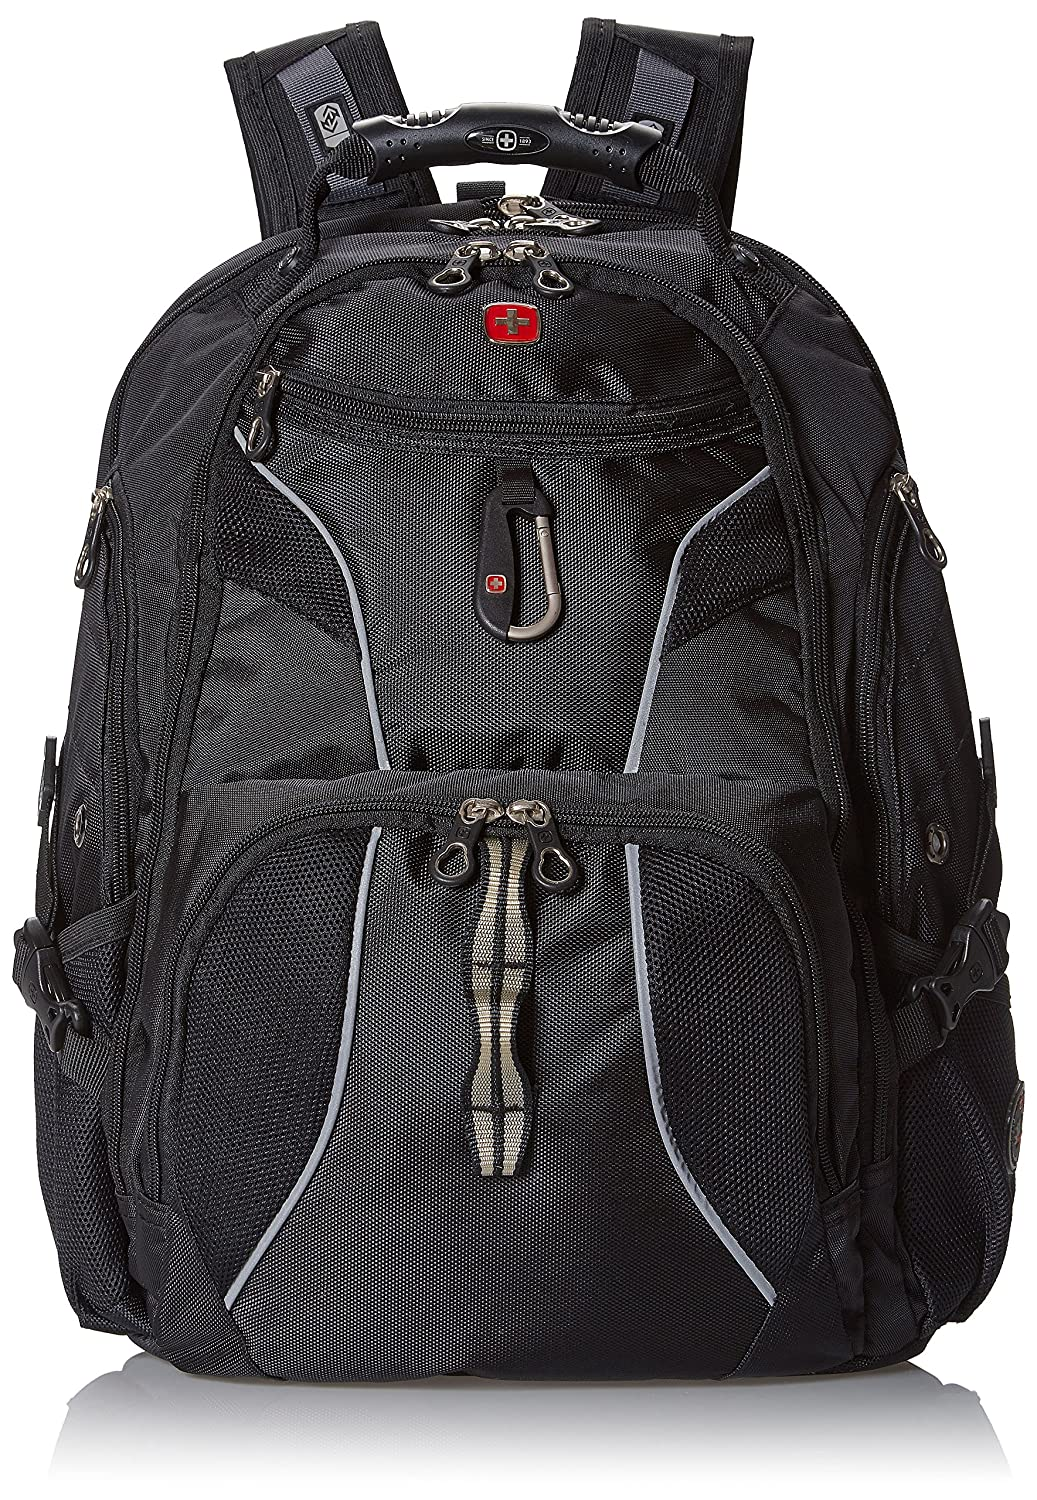 8a895082f7 Amazon.com  Swiss Gear SA1923 Black TSA Friendly ScanSmart Laptop Backpack  - Fits Most 15 Inch Laptops and Tablets  Computers   Accessories